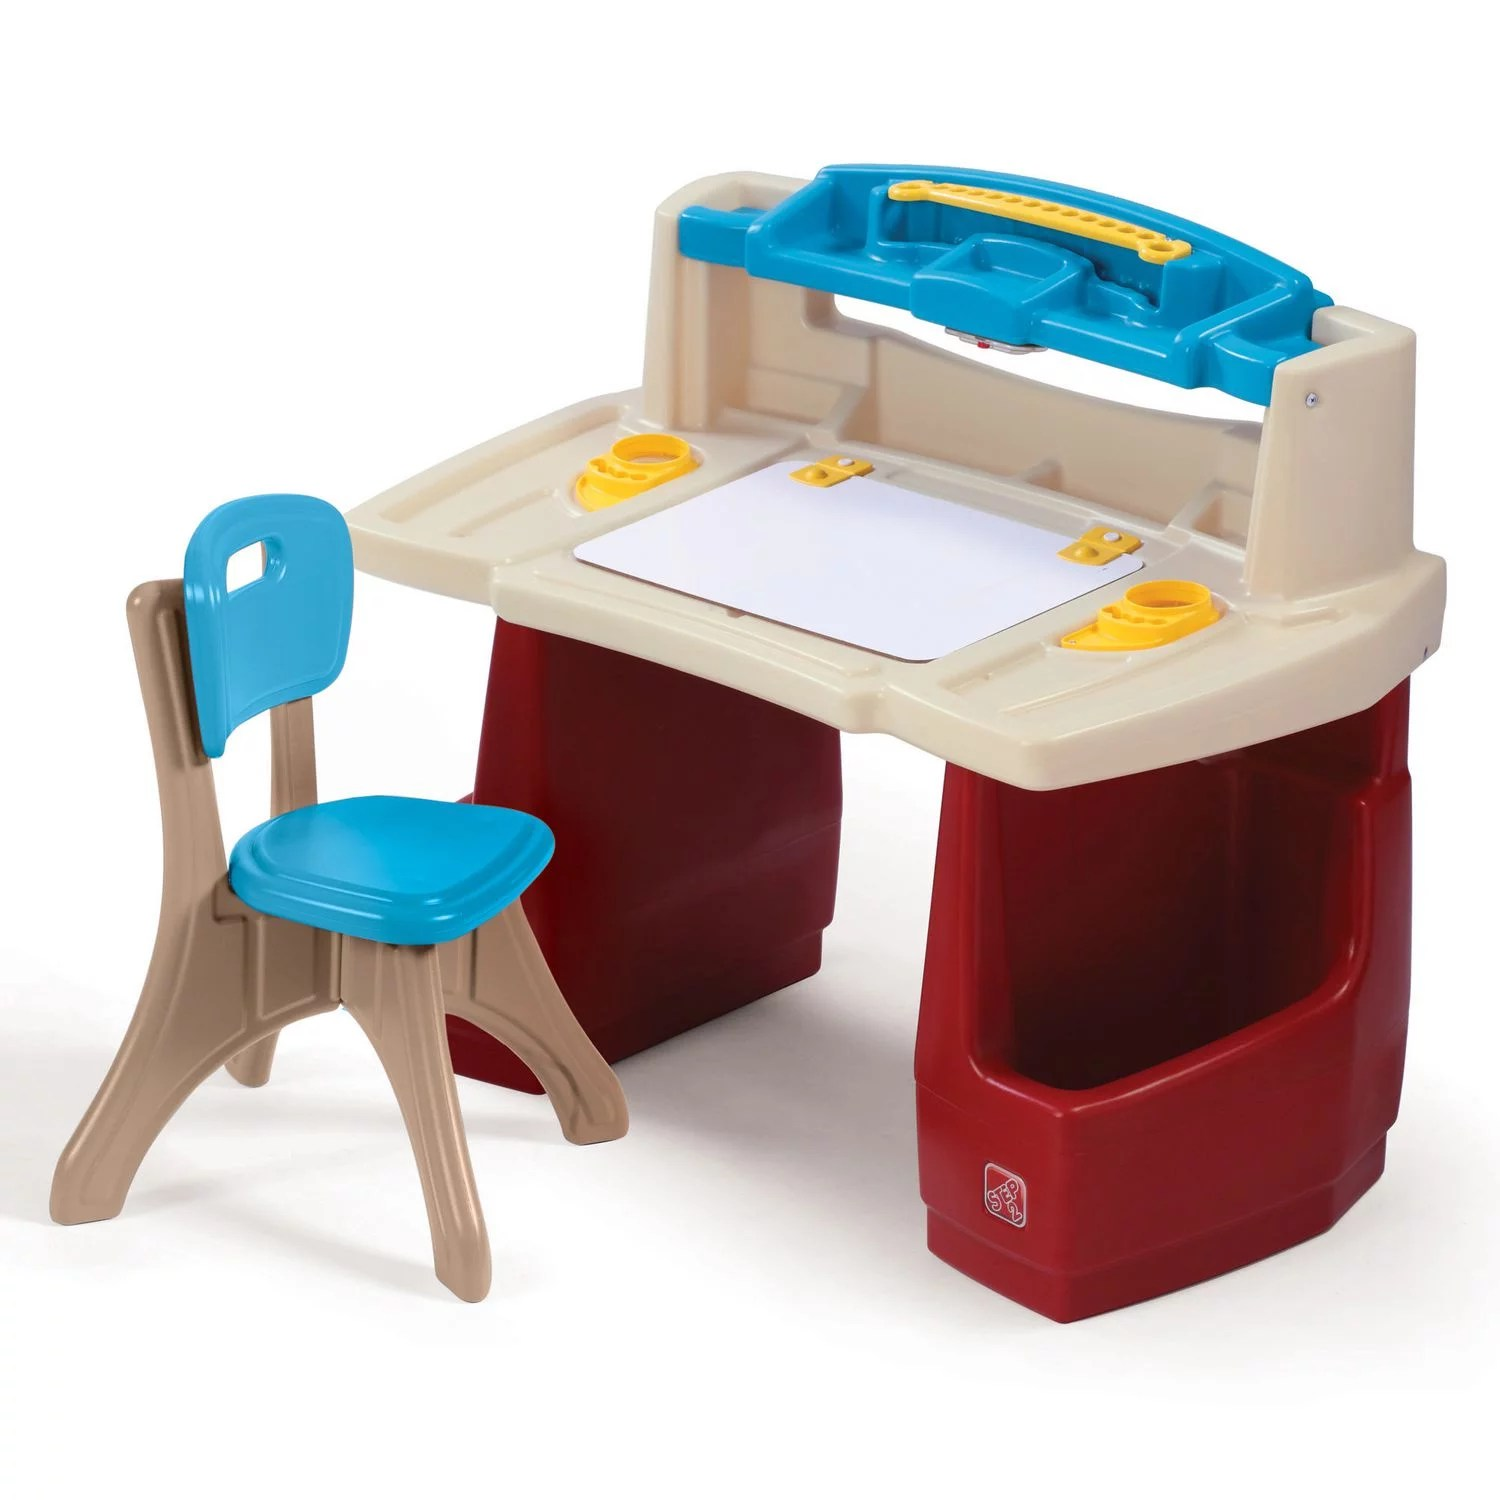 Step2 Deluxe Art Master Desk Kids Art Table with Storage